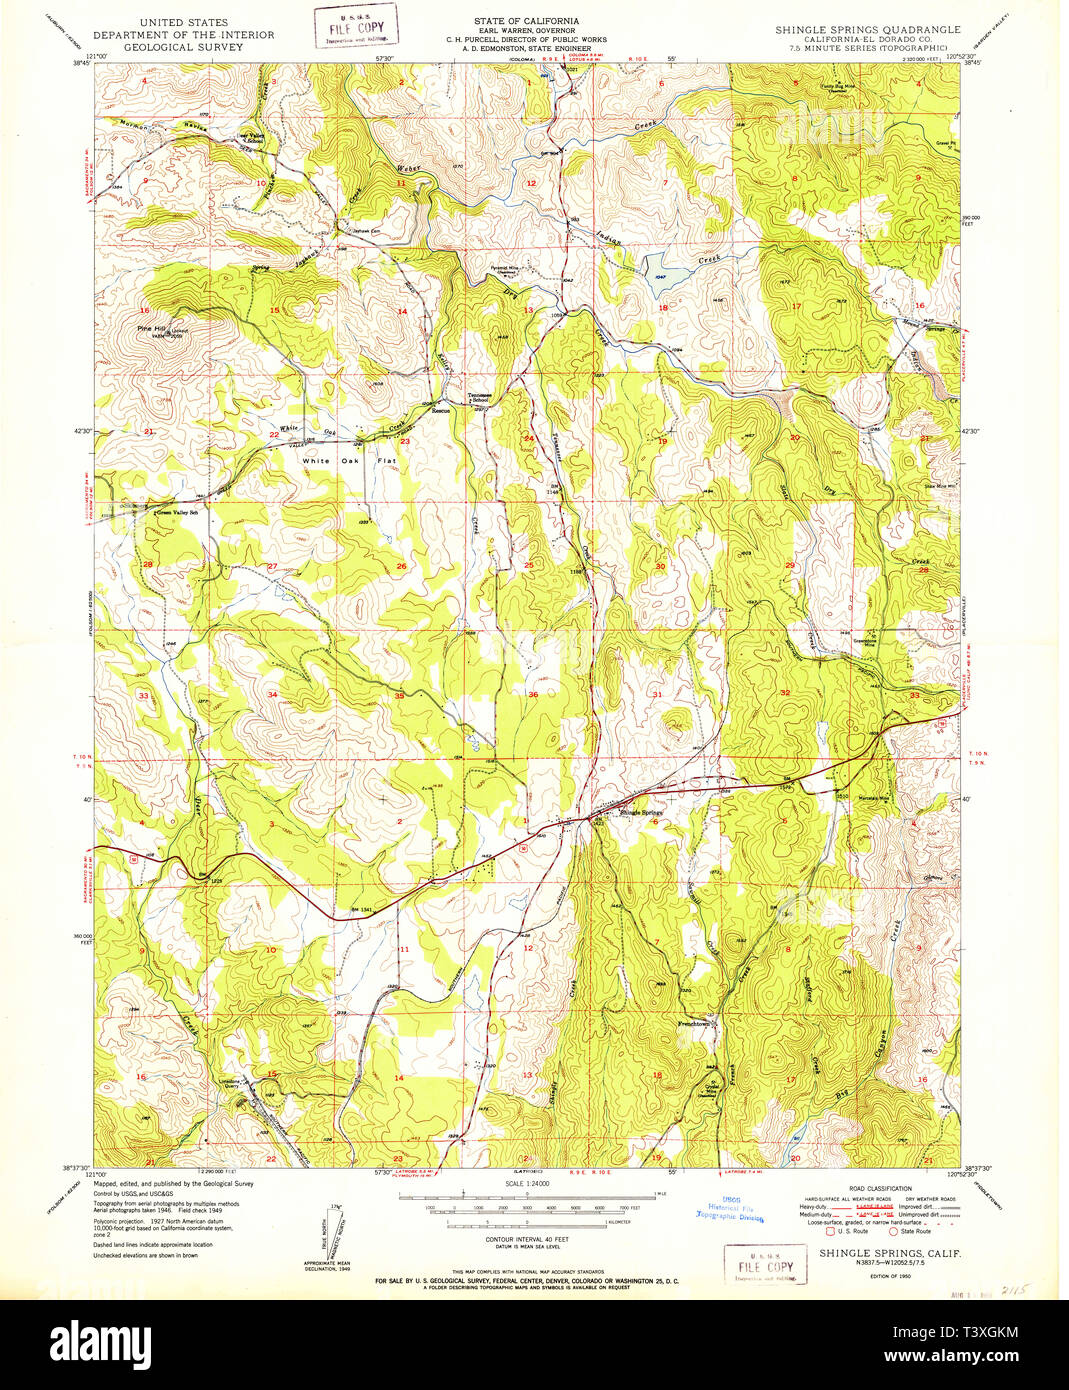 USGS TOPO Map California CA Shingle Springs 300462 1950 ... Shingle Springs Map on vacaville map, janesville map, galt map, orangevale map, french gulch map, lake of the pines map, loomis map, manteca map, greenwood map, spring valley map, tuolumne map, burney map, marshall gold discovery state historic park map, fair oaks map, rancho murieta map, rancho cordova map, lodi map, dollar point map,